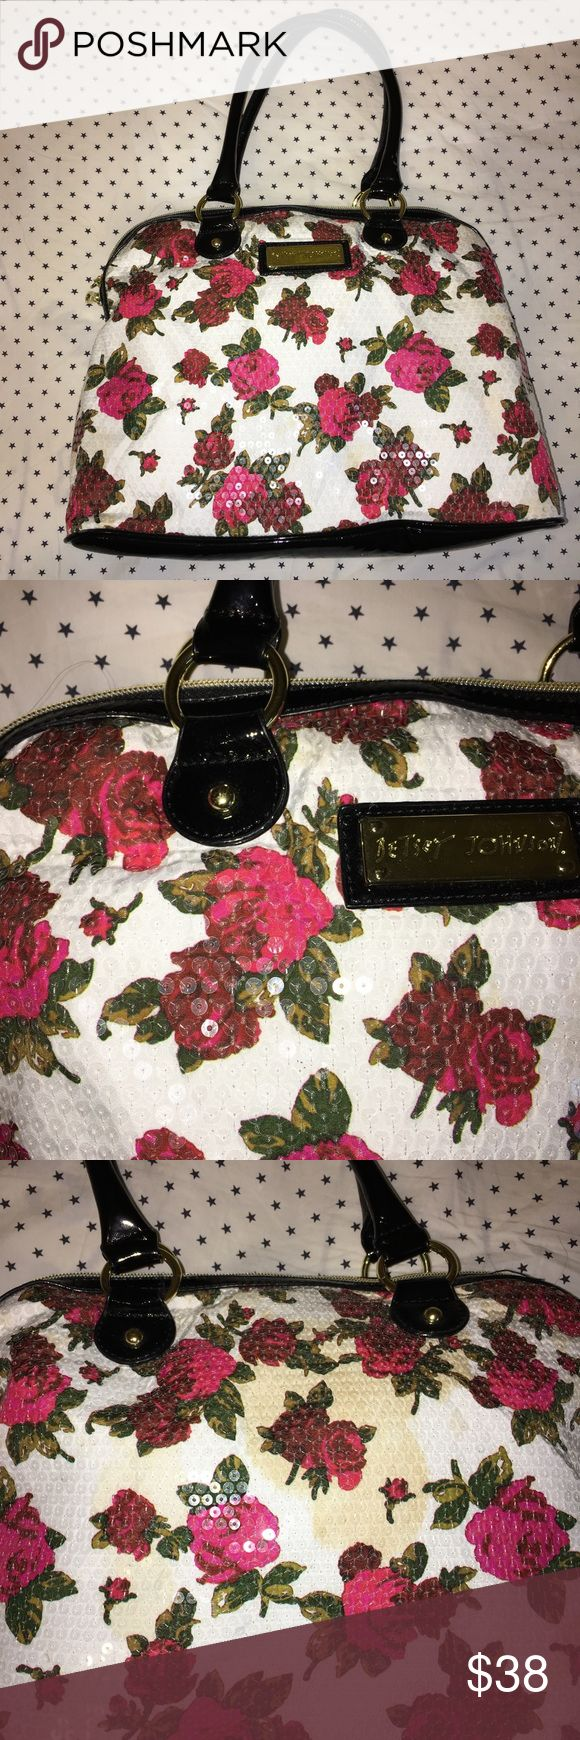 Floral Betsey Johnson Bag This bag looks great. The only flaw is a stain on the back. I think it can be easily washed off. It has sequins all over with black glossy straps.   * All items come from a smoke free & pet free home. * ALL REASONABLE OFFERS WELCOME! PLEASE GIVE ME YOUR OFFER.  * Items ship next business day. Betsey Johnson Bags Shoulder Bags